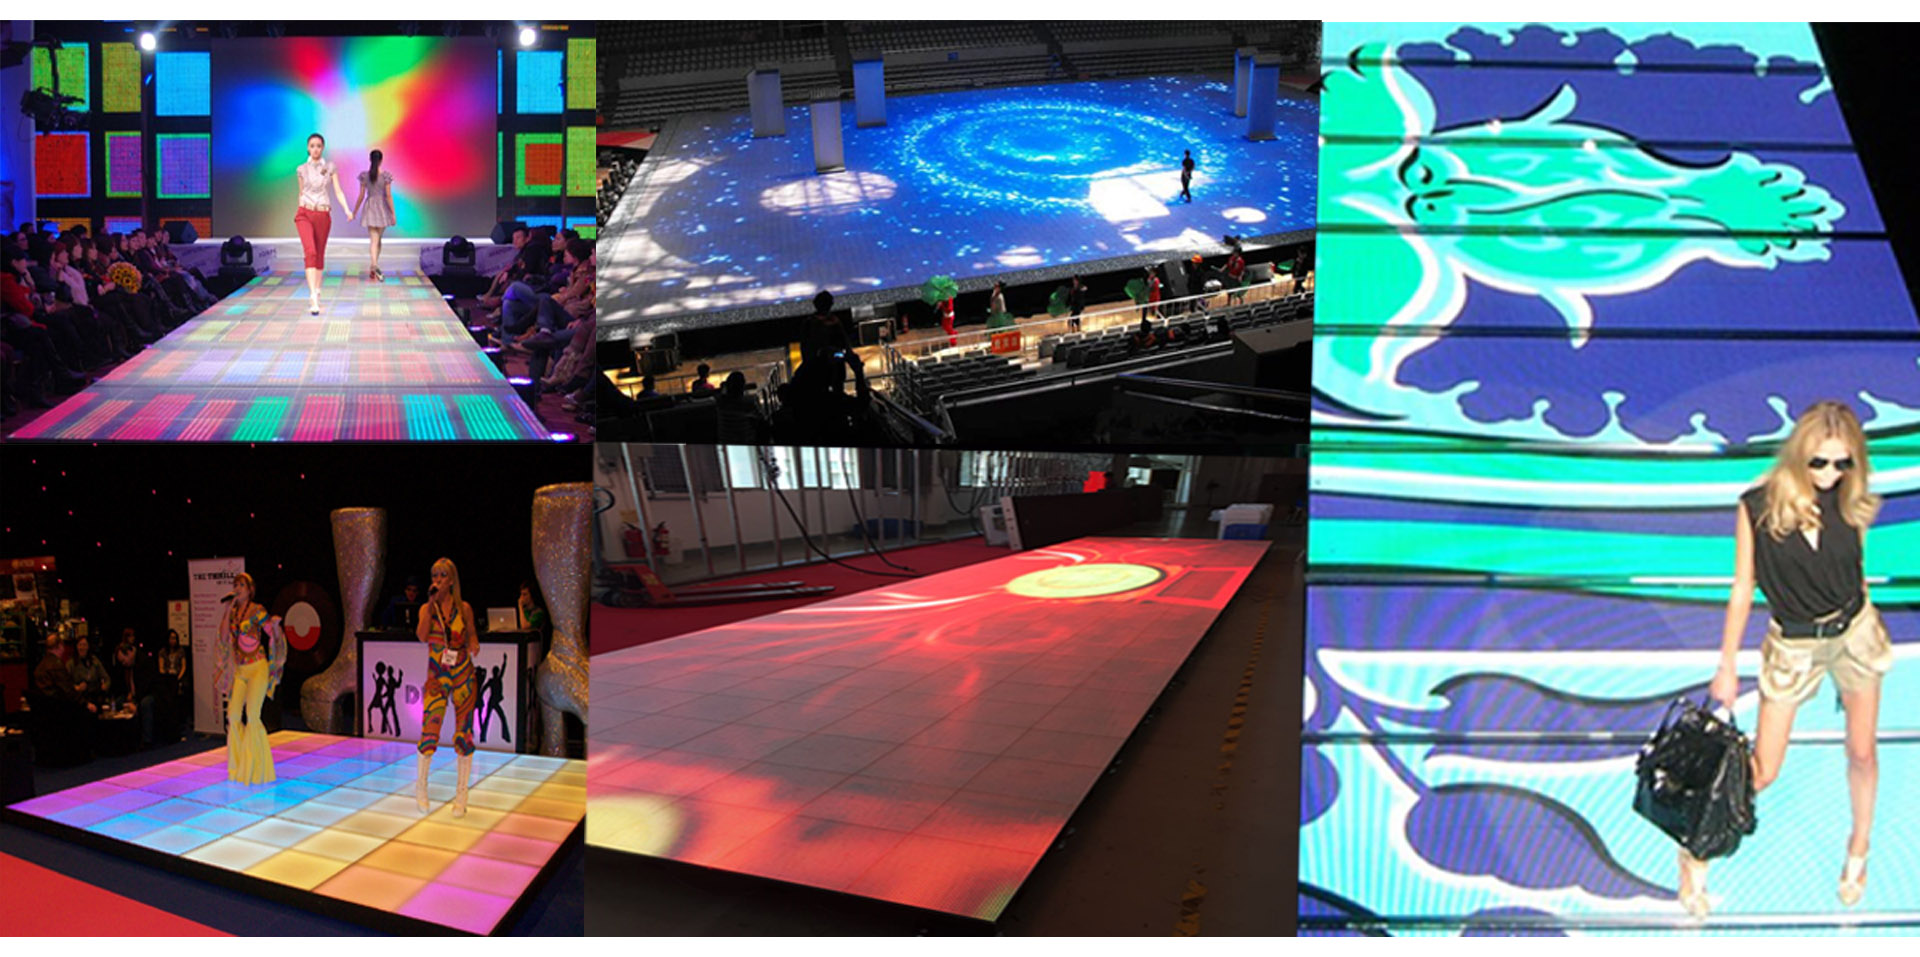 Floor LED display widely used in hall ,square, showroom, stage, bar, shopping malls, catwalks. It can be used for fixed installation and rental events.